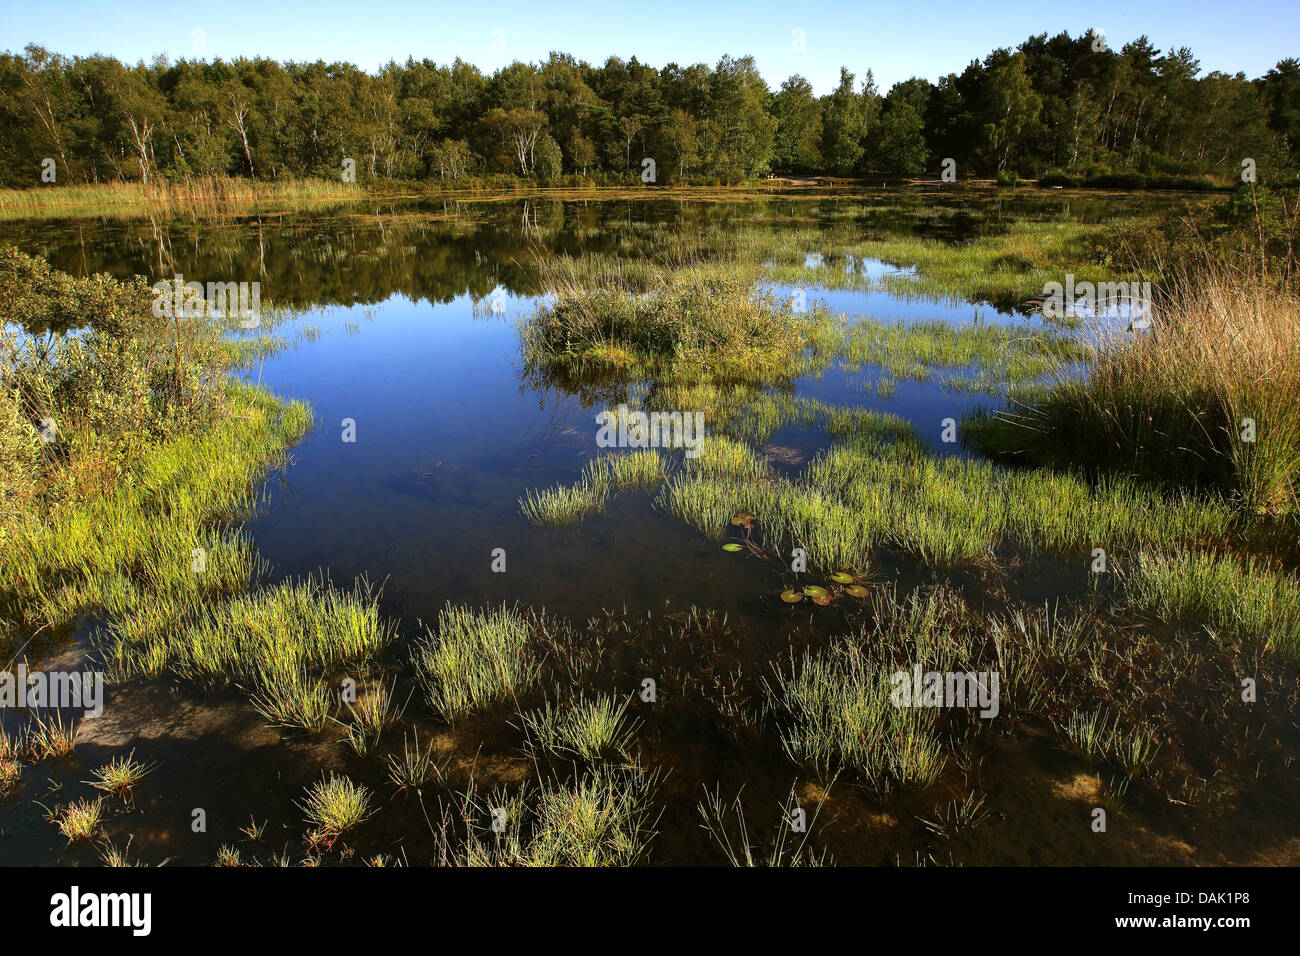 lake in Hoge Kempen national park, Belgium, Hoge Kempen National Park - Stock Image